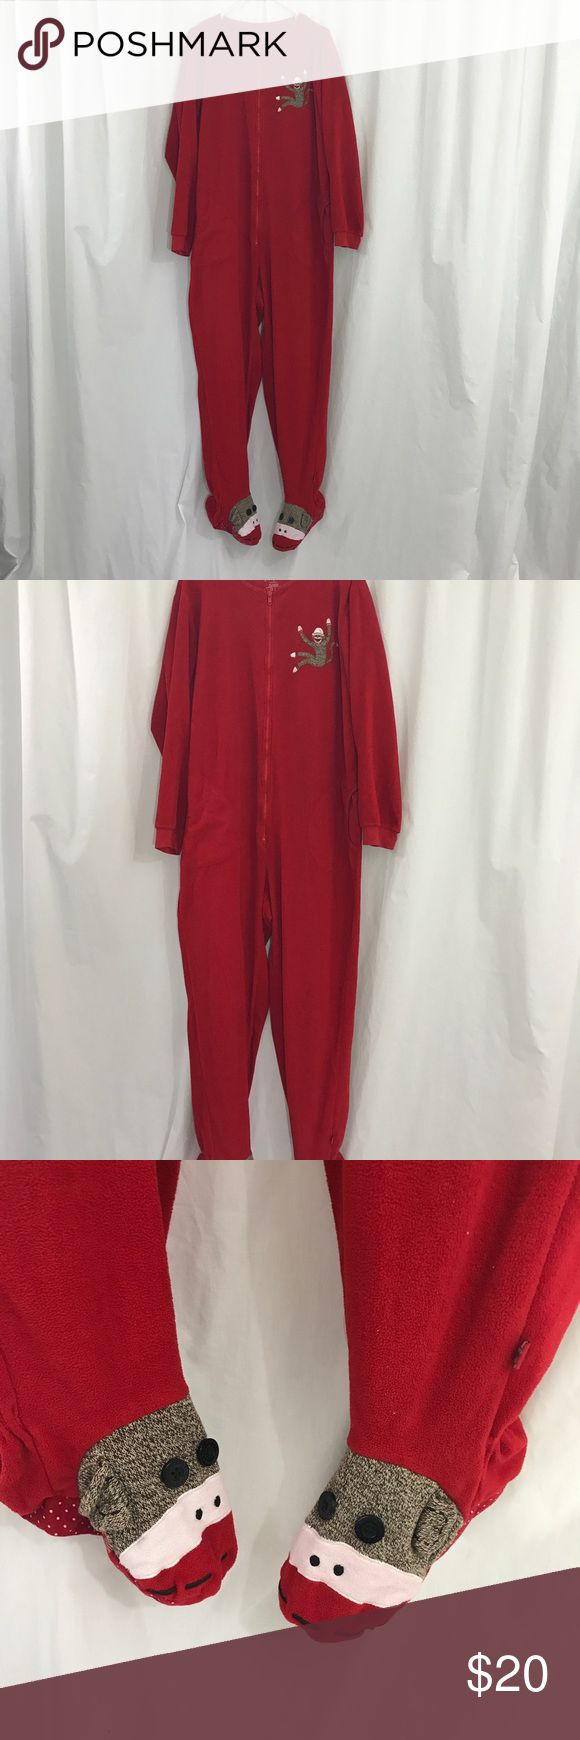 Nick and Nora Red Fleece Sock MonkeyFooted PJs XL EUC footed PJs. The feet are sock monkeys faces. Zips up the front. Super cute for the Holidays. Size CL Nick & Nora Intimates & Sleepwear Pajamas